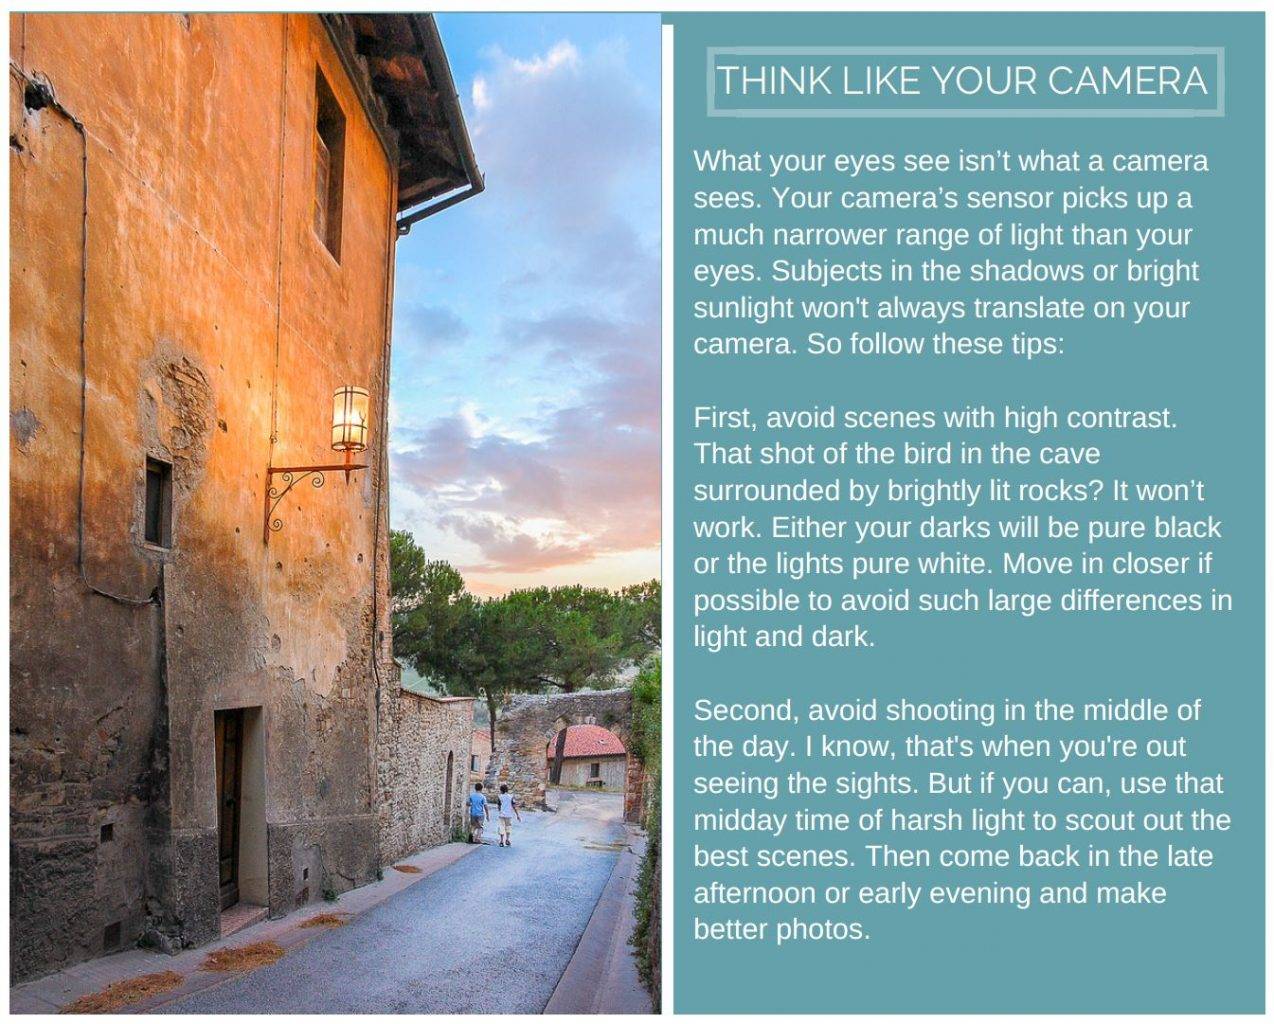 Photo Guide - Think like your camera